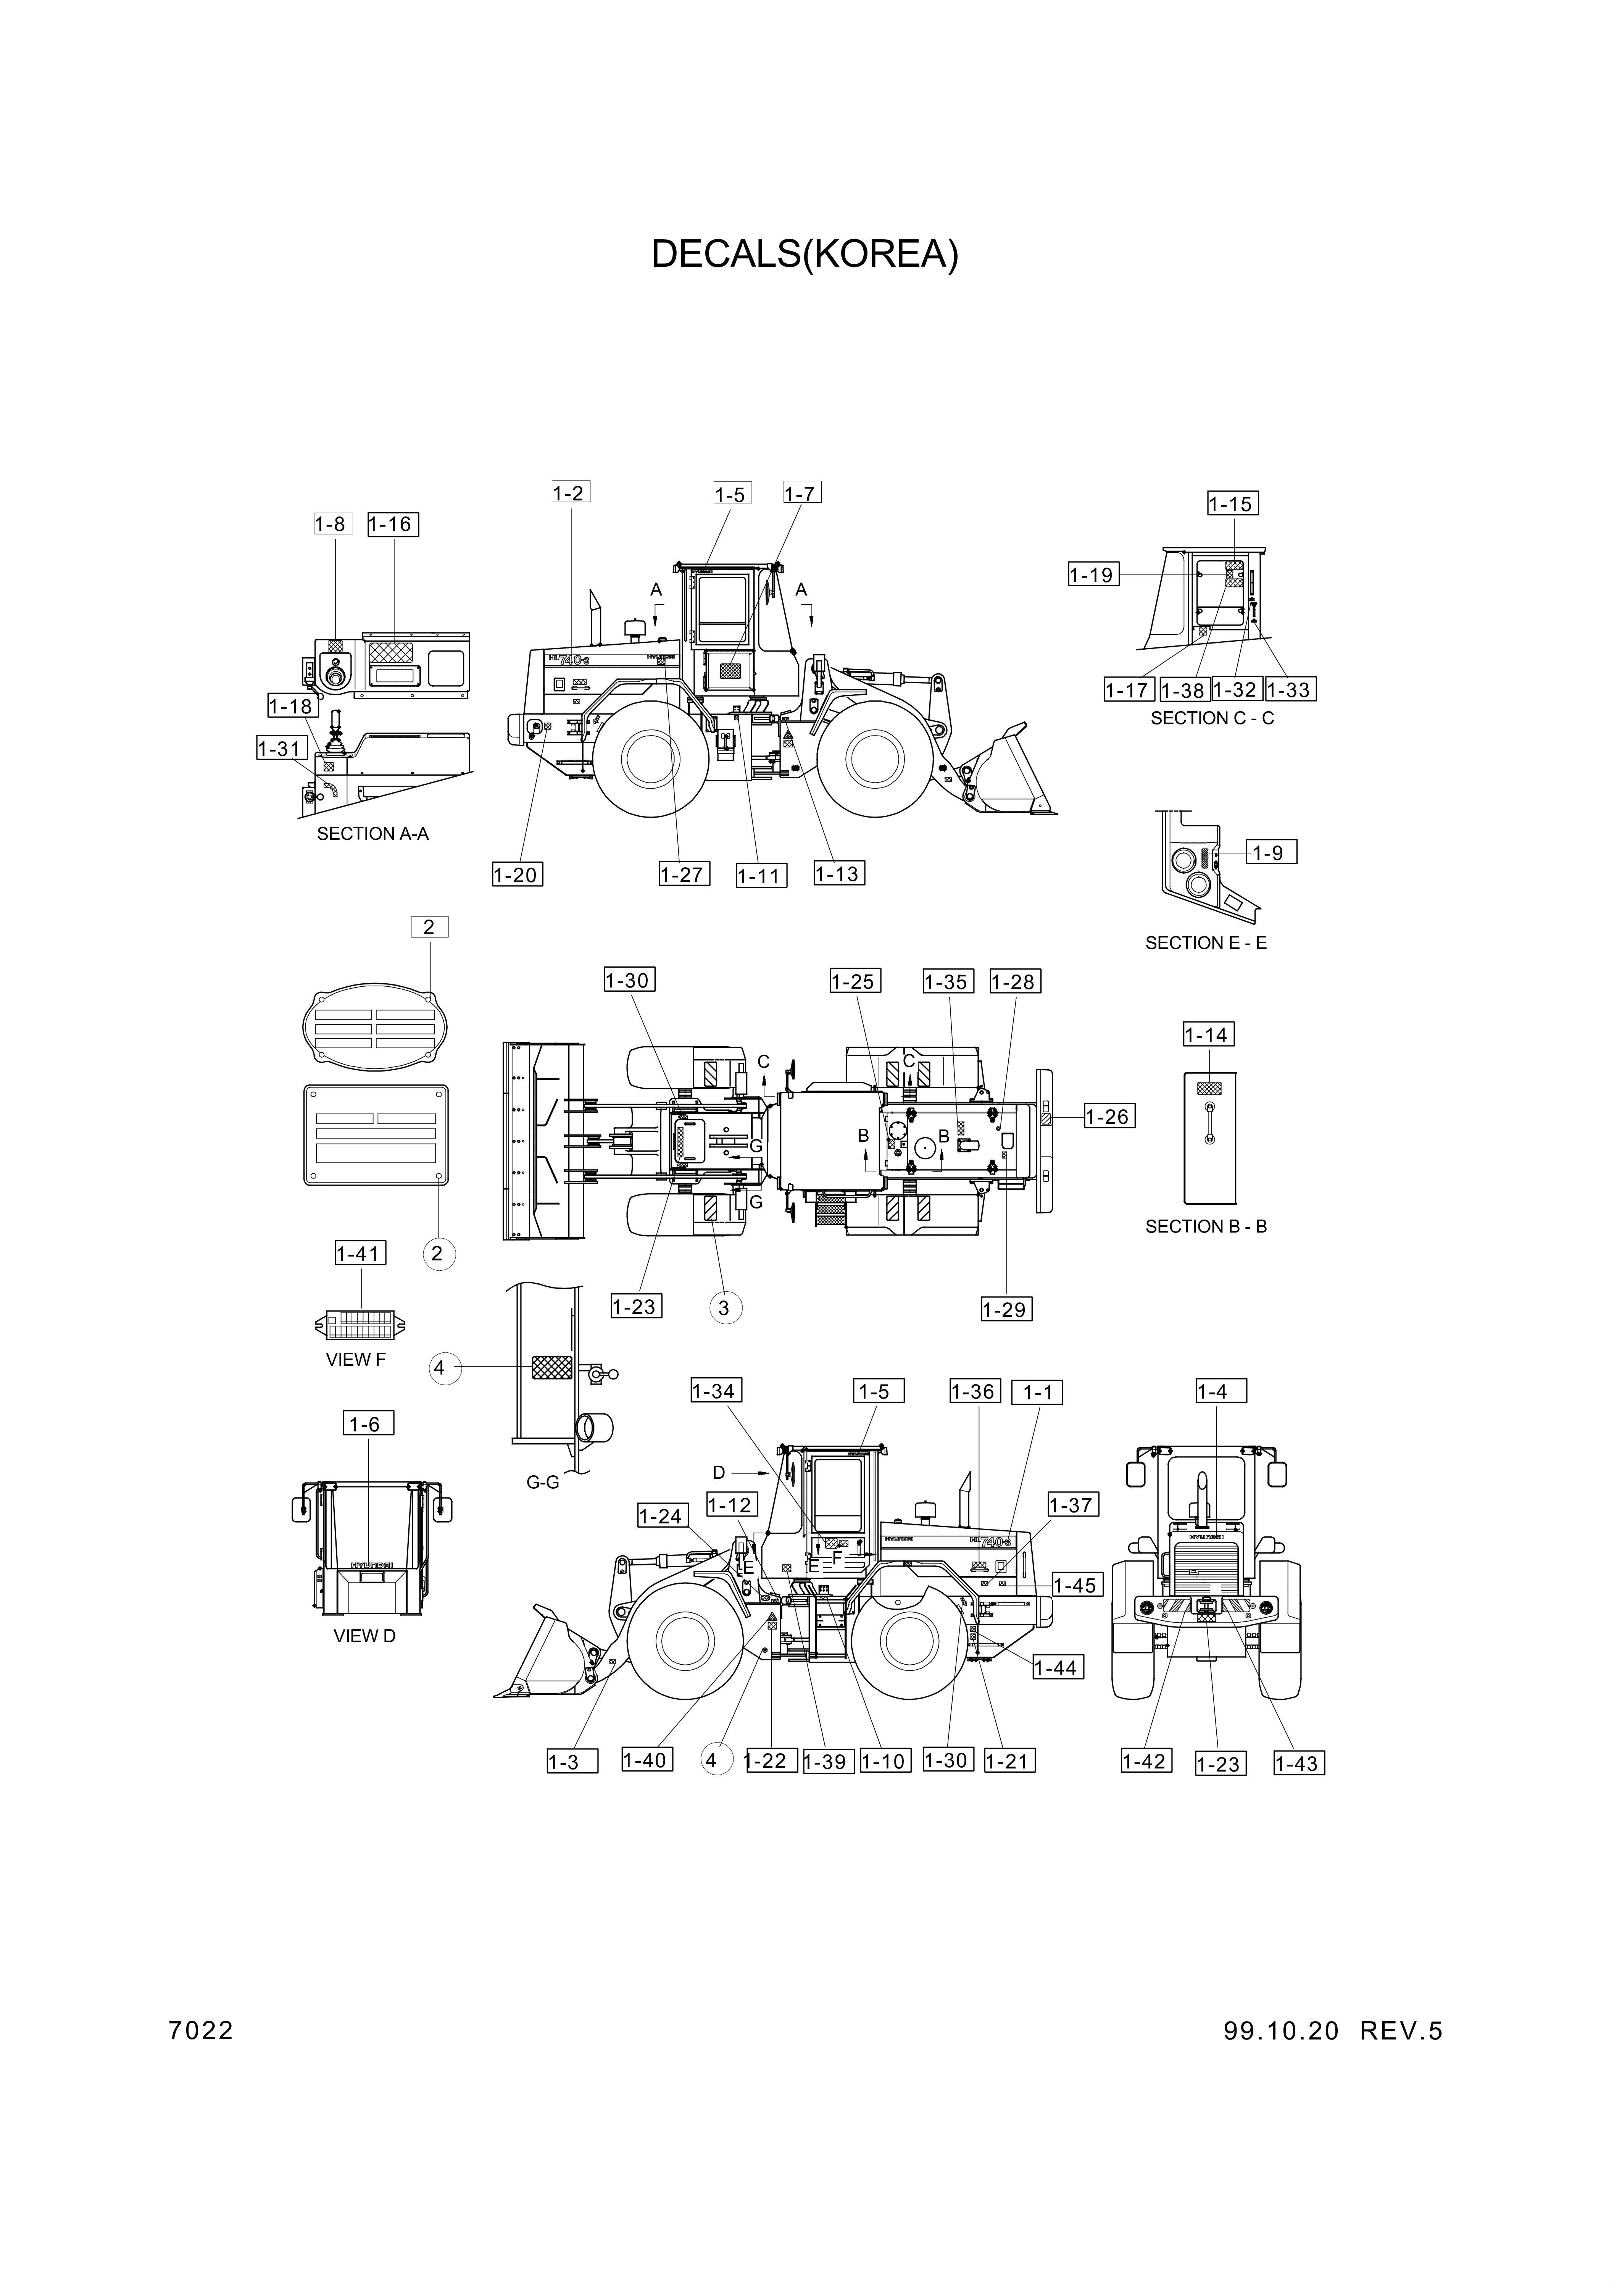 drawing for Hyundai Construction Equipment 94L1-00660 - DECAL-SHUTOFF VALVE